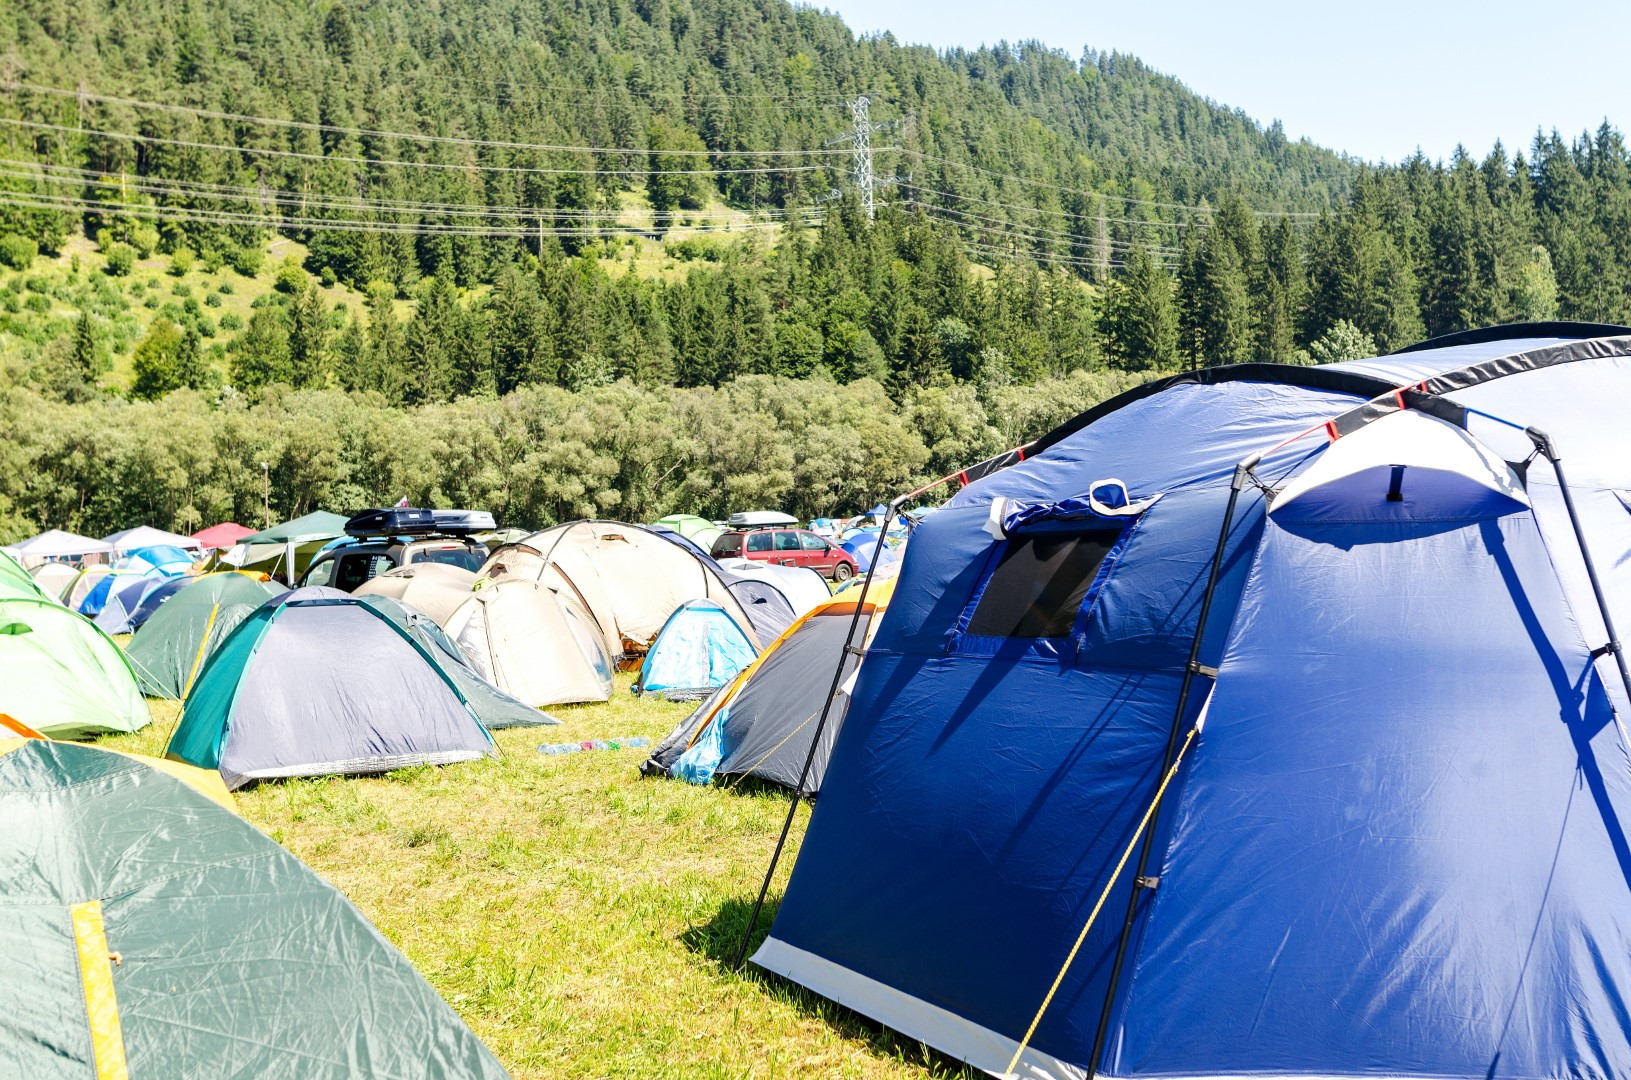 what are the easiest tents to put up What are the easiest tents to put up?